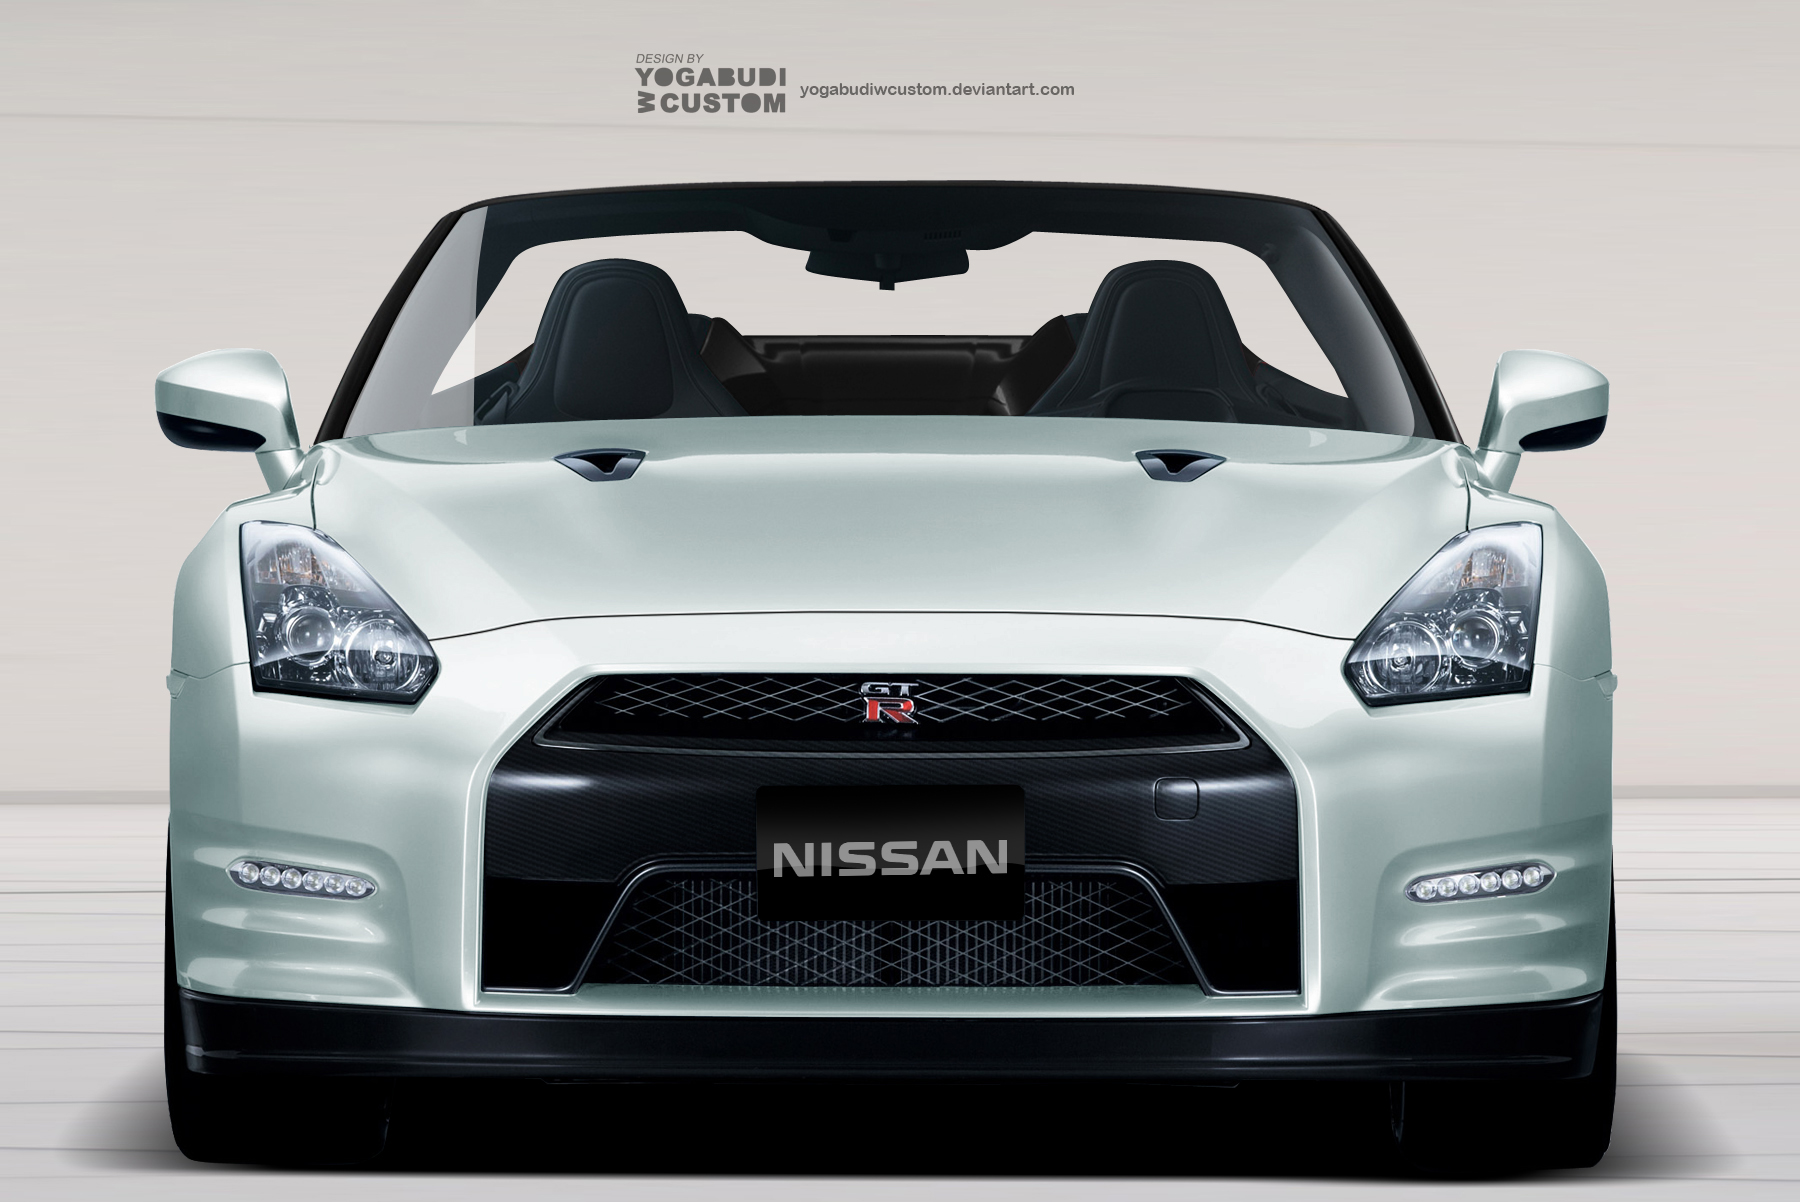 Nissan GTR Convertible - Front View by YogaBudiwCUSTOM